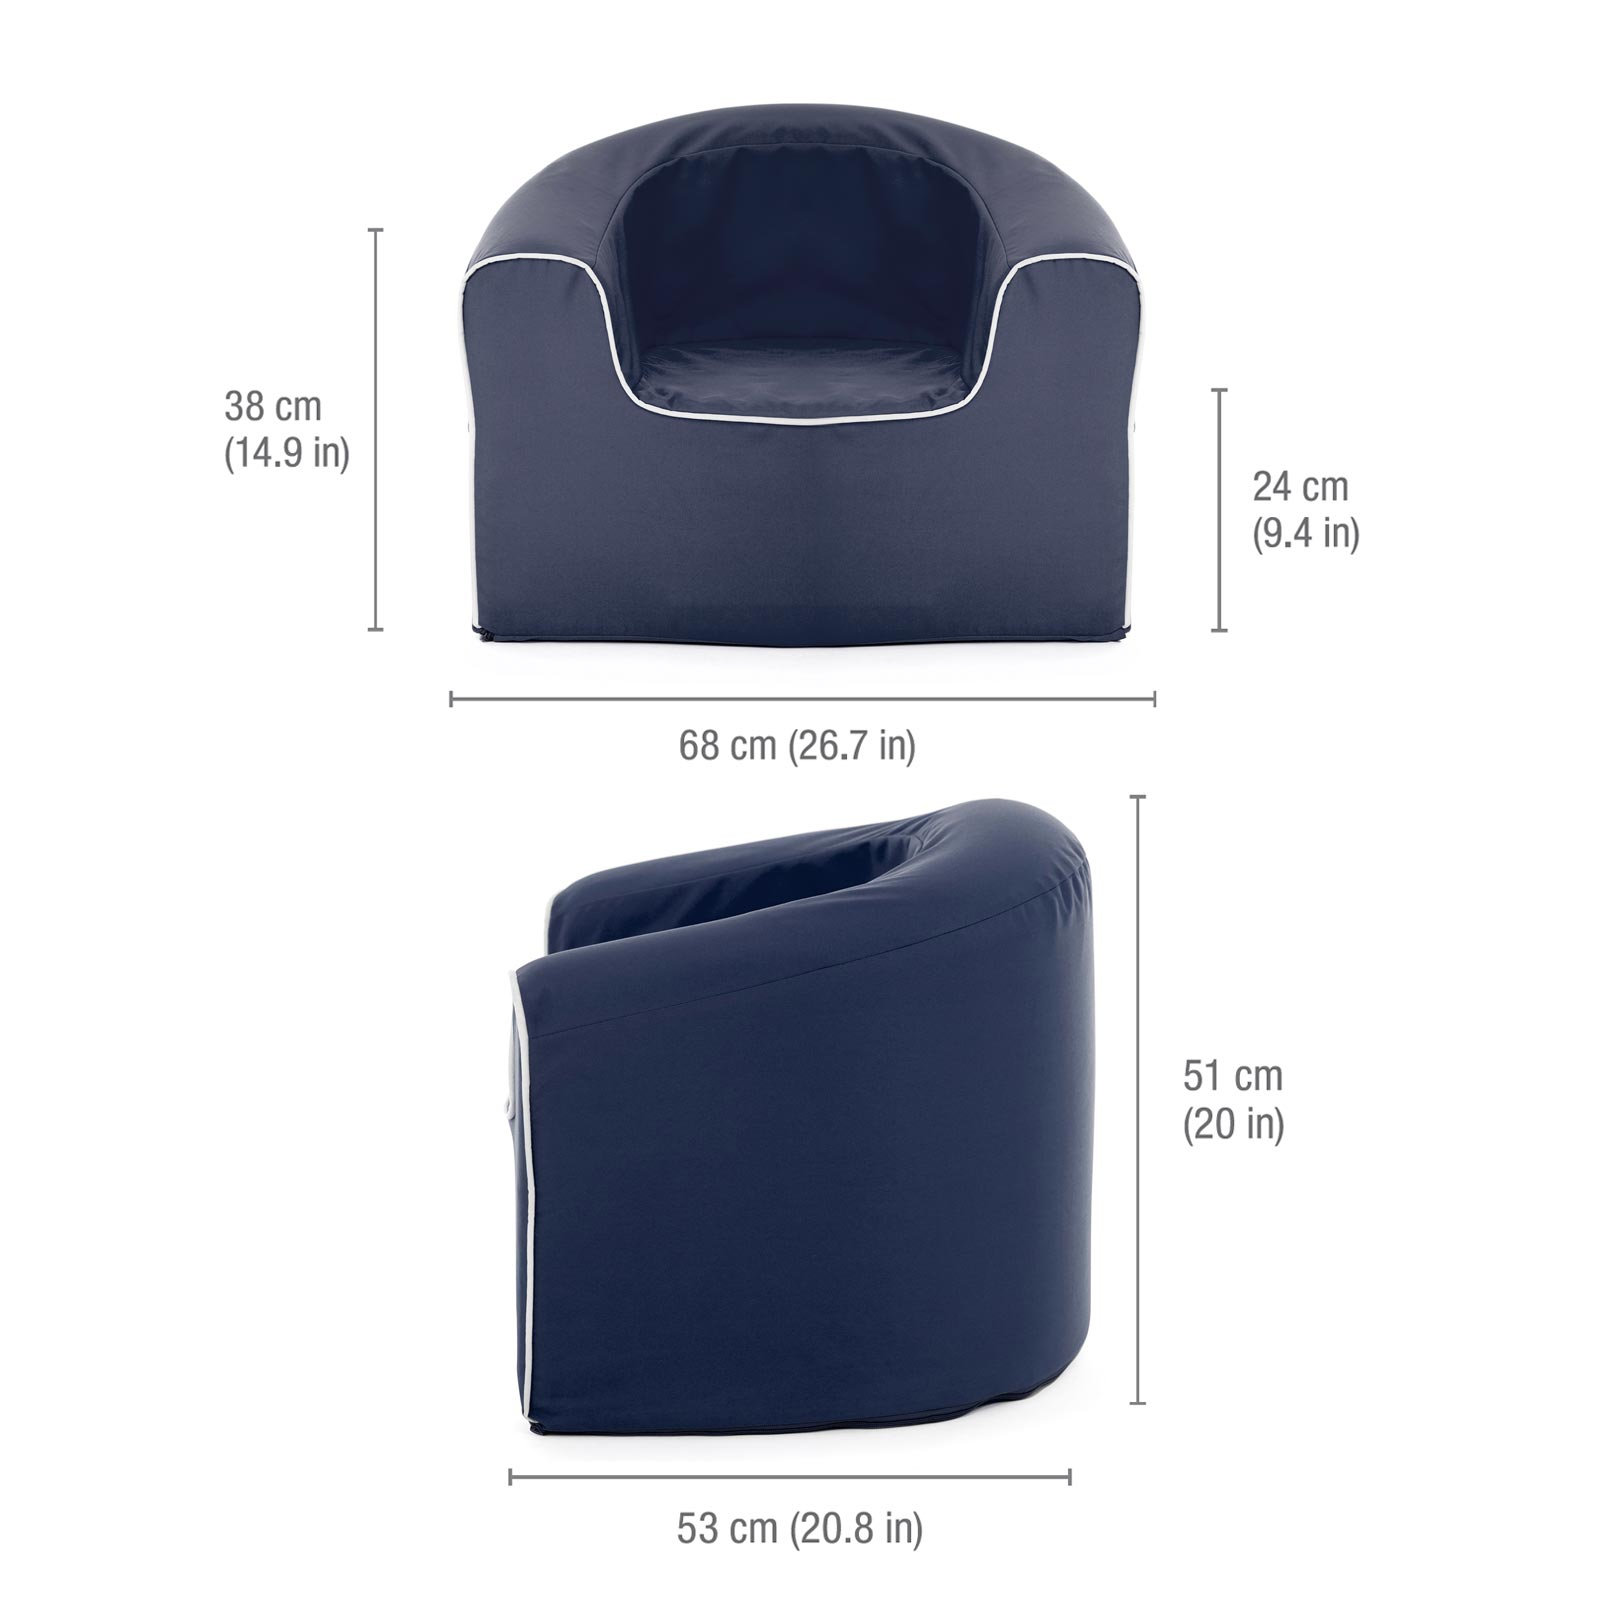 Image shows the dimensions of the kids crown blue pop armchair kids seat